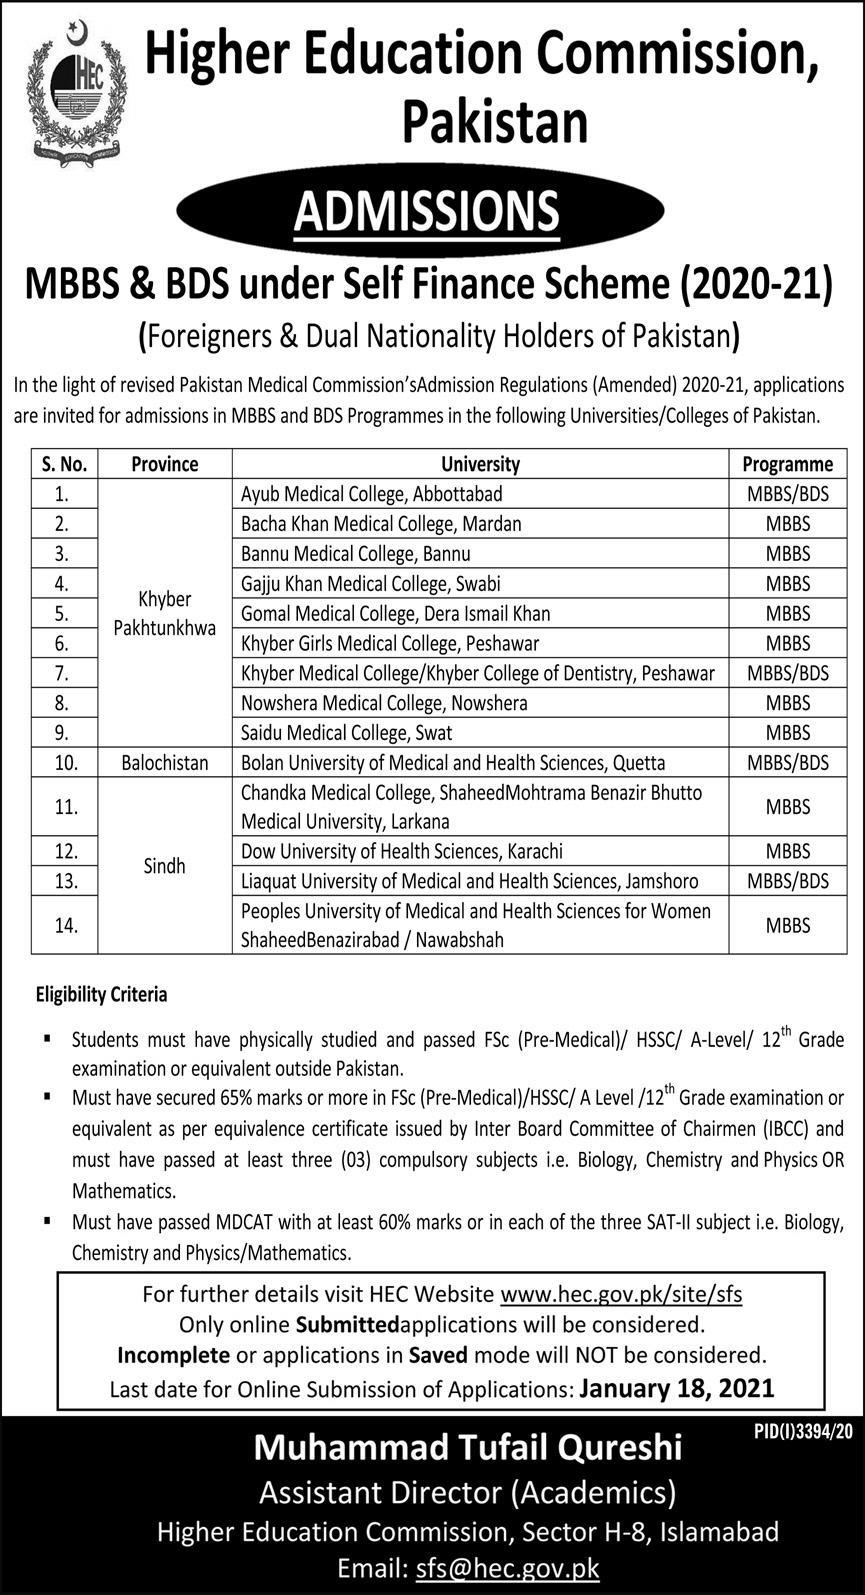 MBBS, BDS, BSc Engr Admission 2020 For Foreigners & Dual Nationals in Pakistan